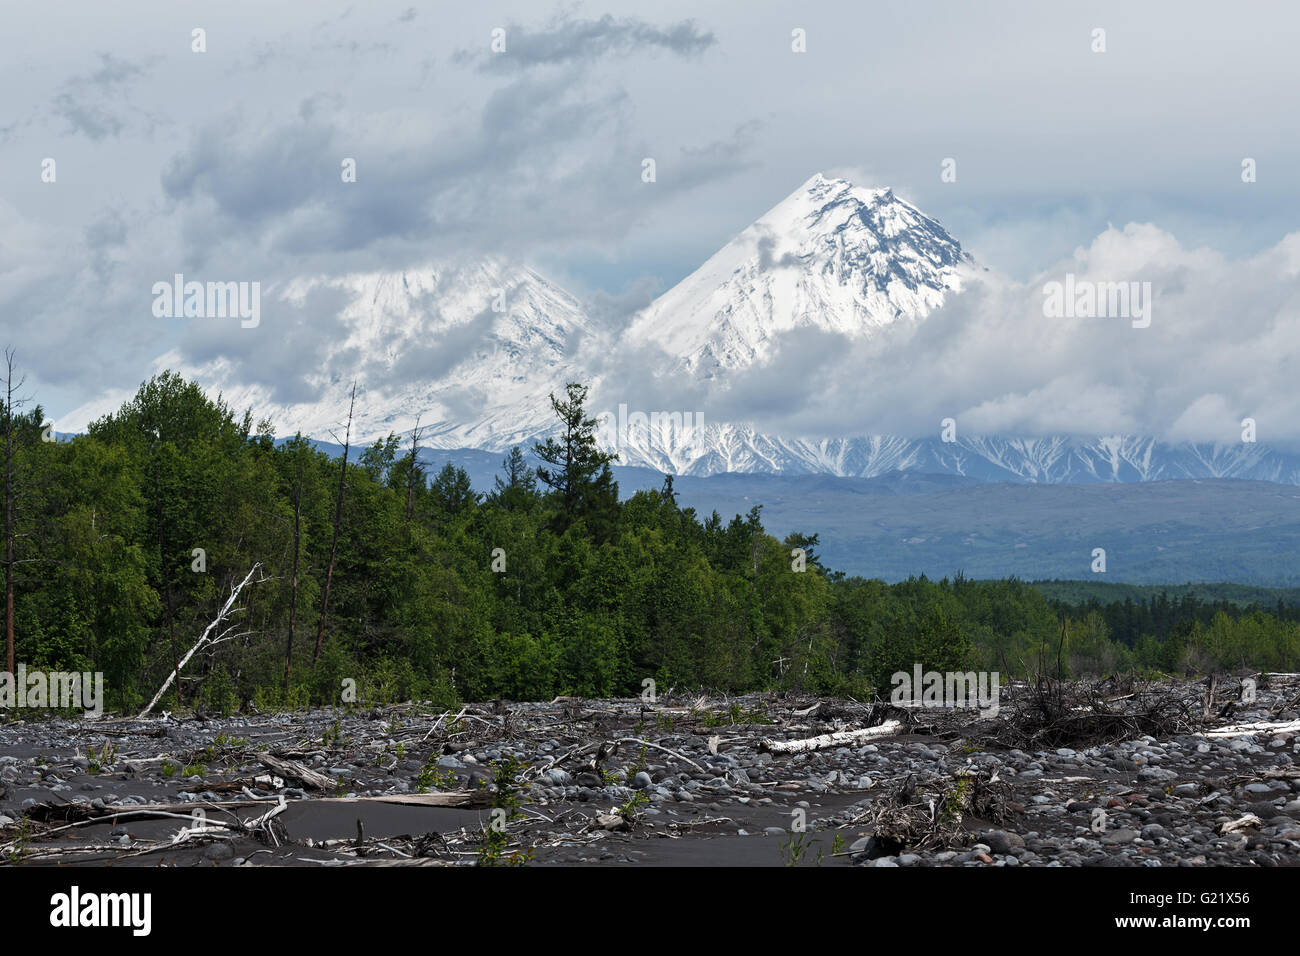 Beautiful summery view on Klyuchevskoy Volcano (in the clouds) and Kamen Volcano on a cloudy day. Russia, Far East, - Stock Image